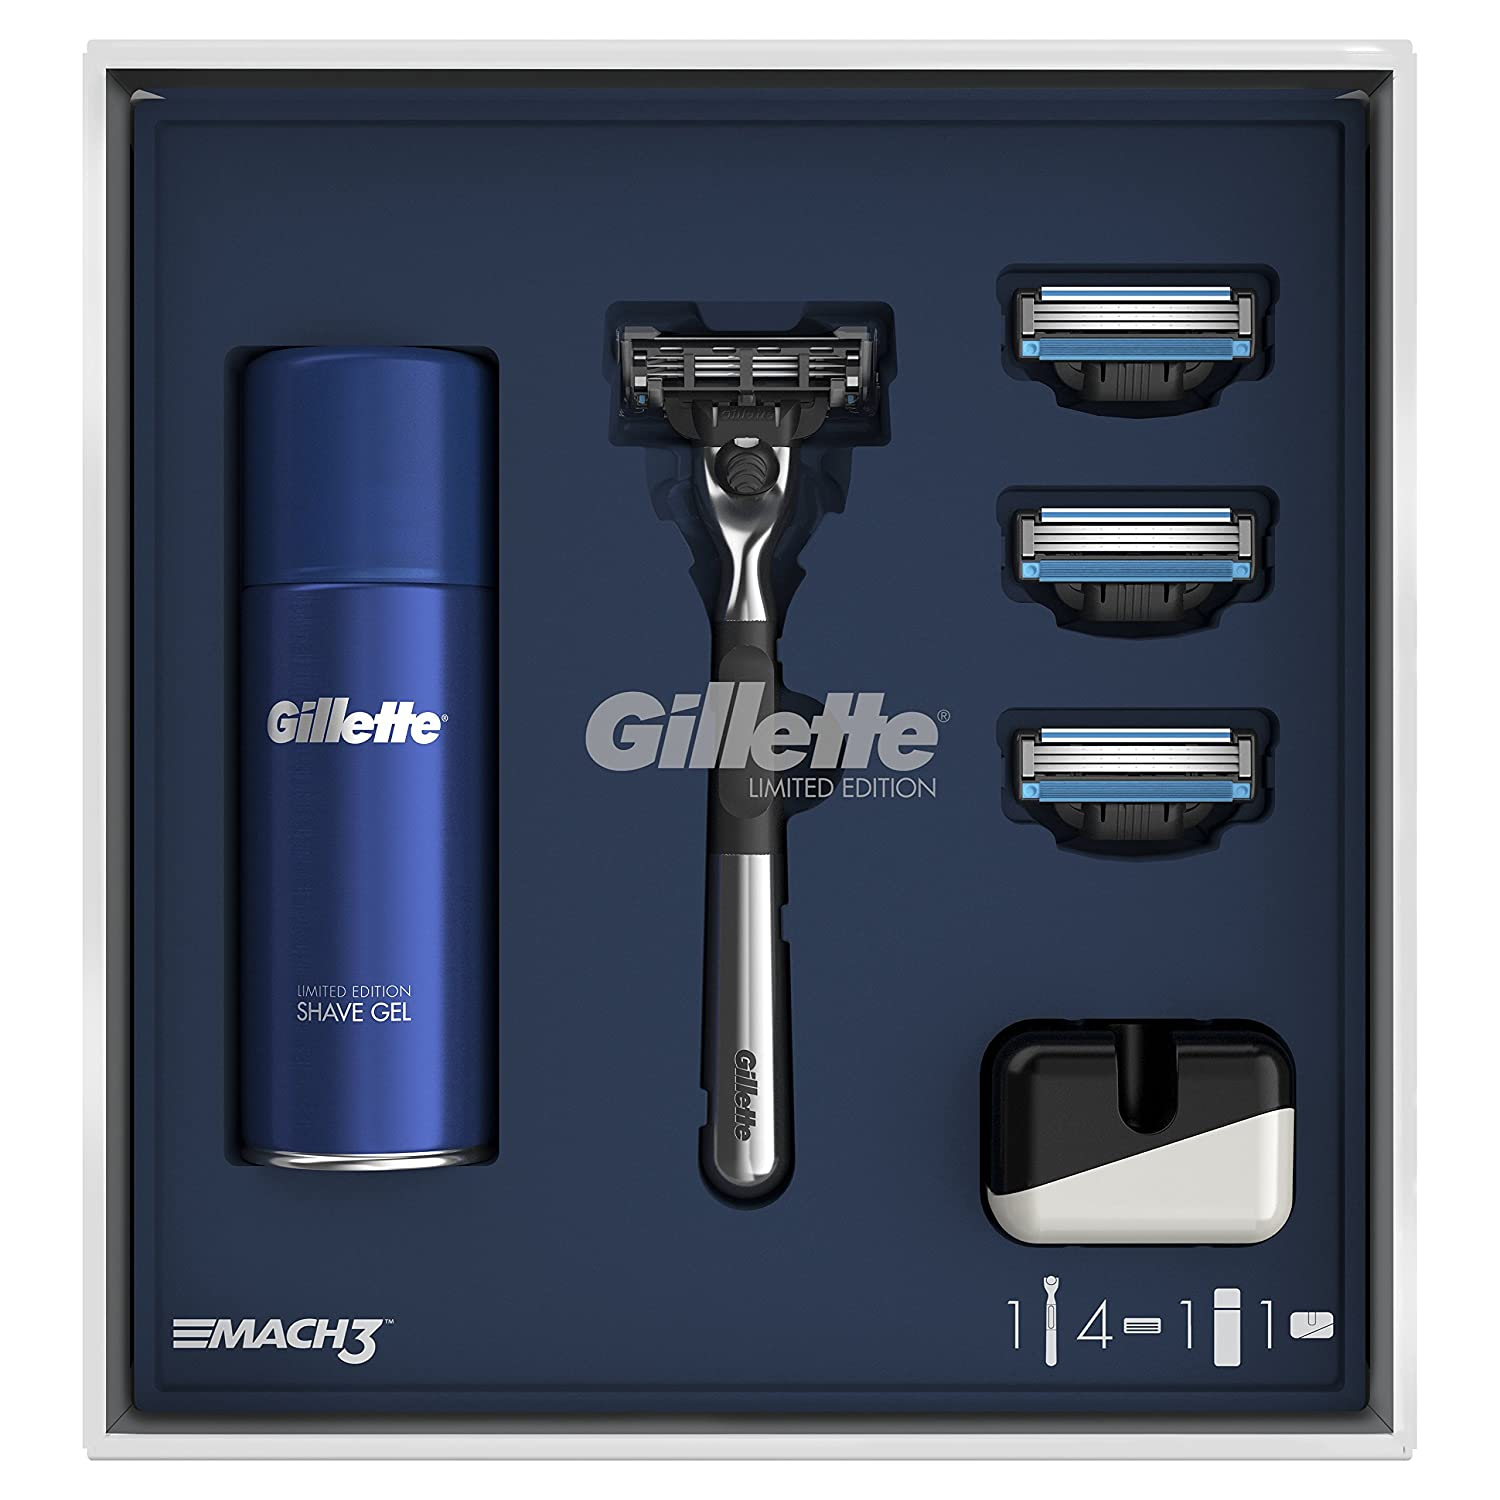 Gillette Mach3 Razor Limited Edition Gift Pack with Chrome Handle Razor, 3 Additional Blade Refills, Shaving Gel + Razor Stand Procter & Gamble 7702018482313